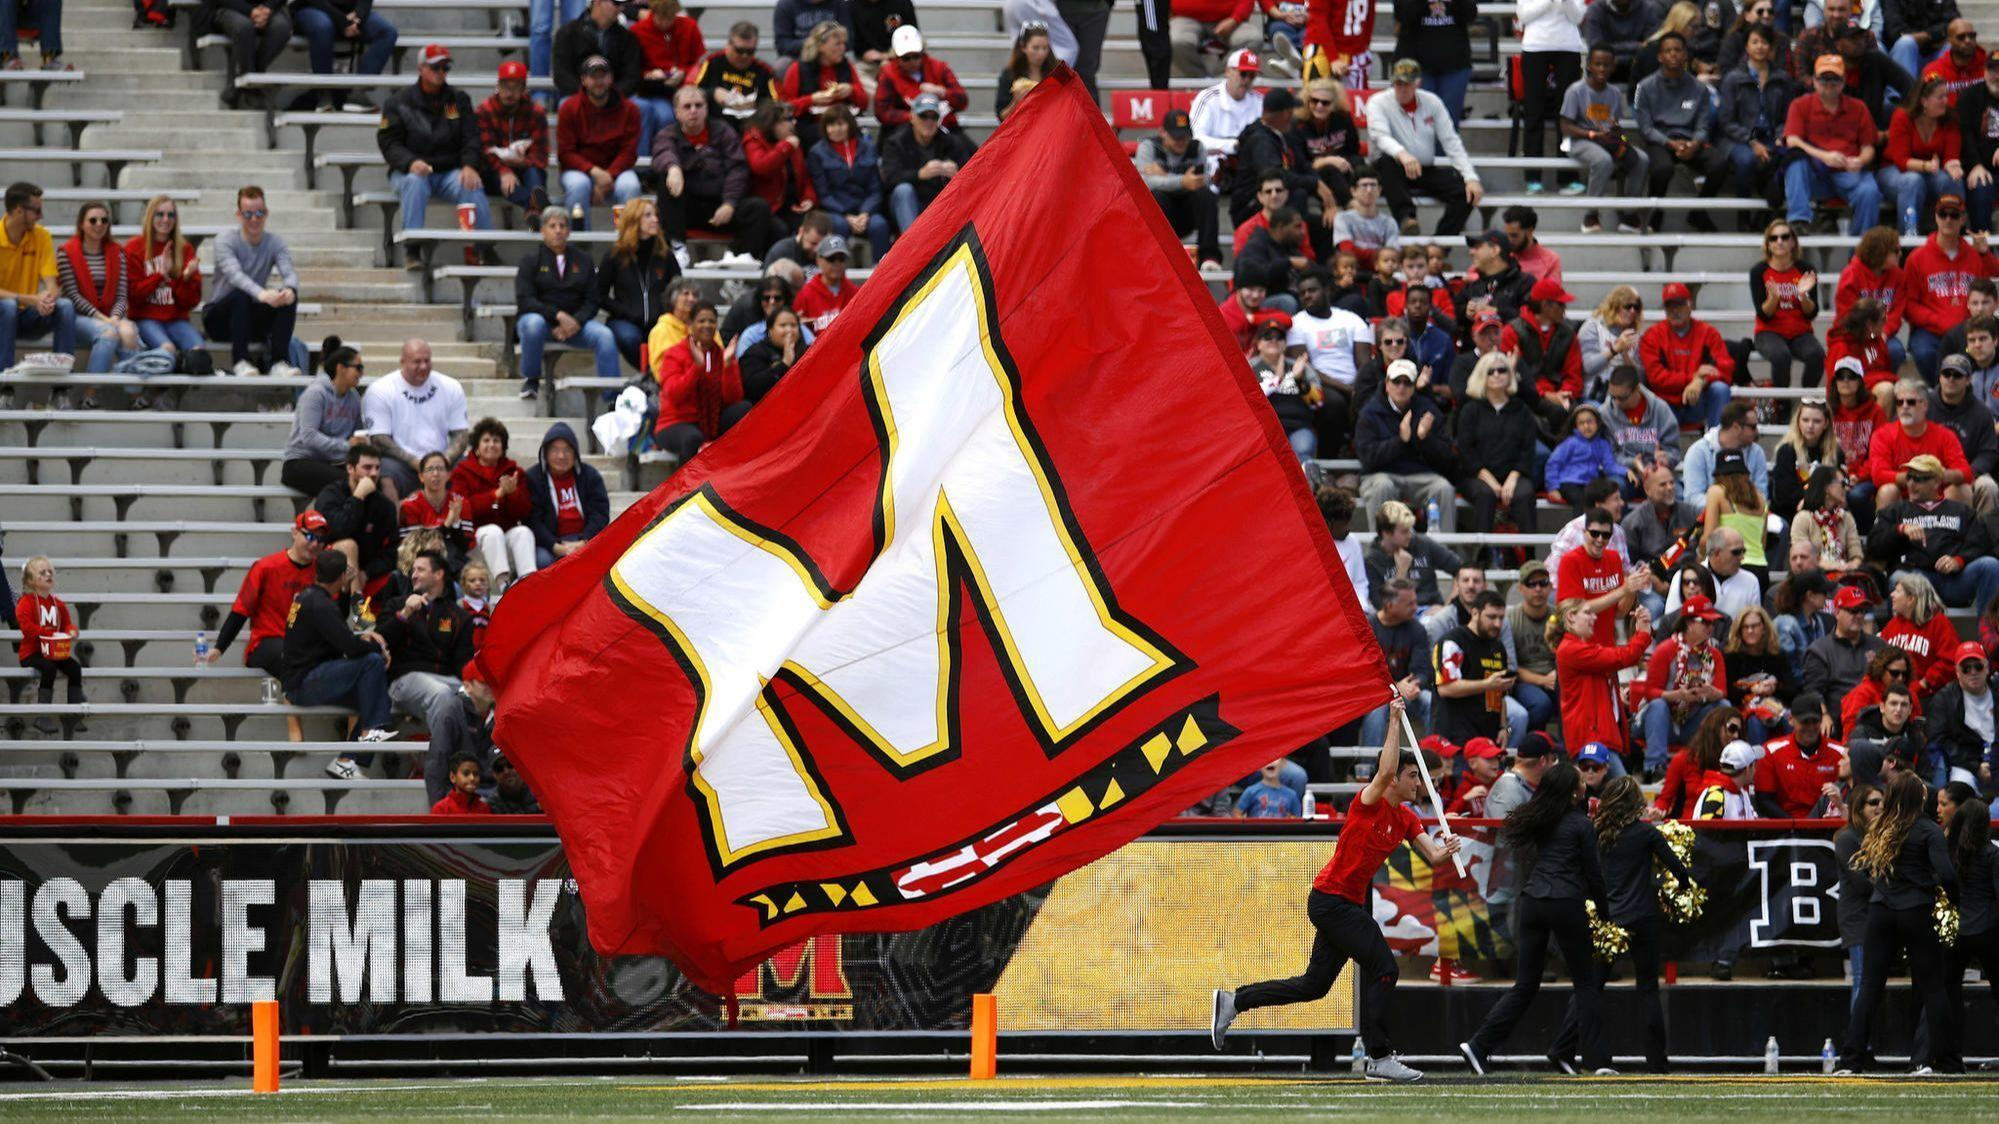 huge selection of ecb3d a42bf Documents show University of Maryland s big football gamble before Jordan  McNair s death - Baltimore Sun